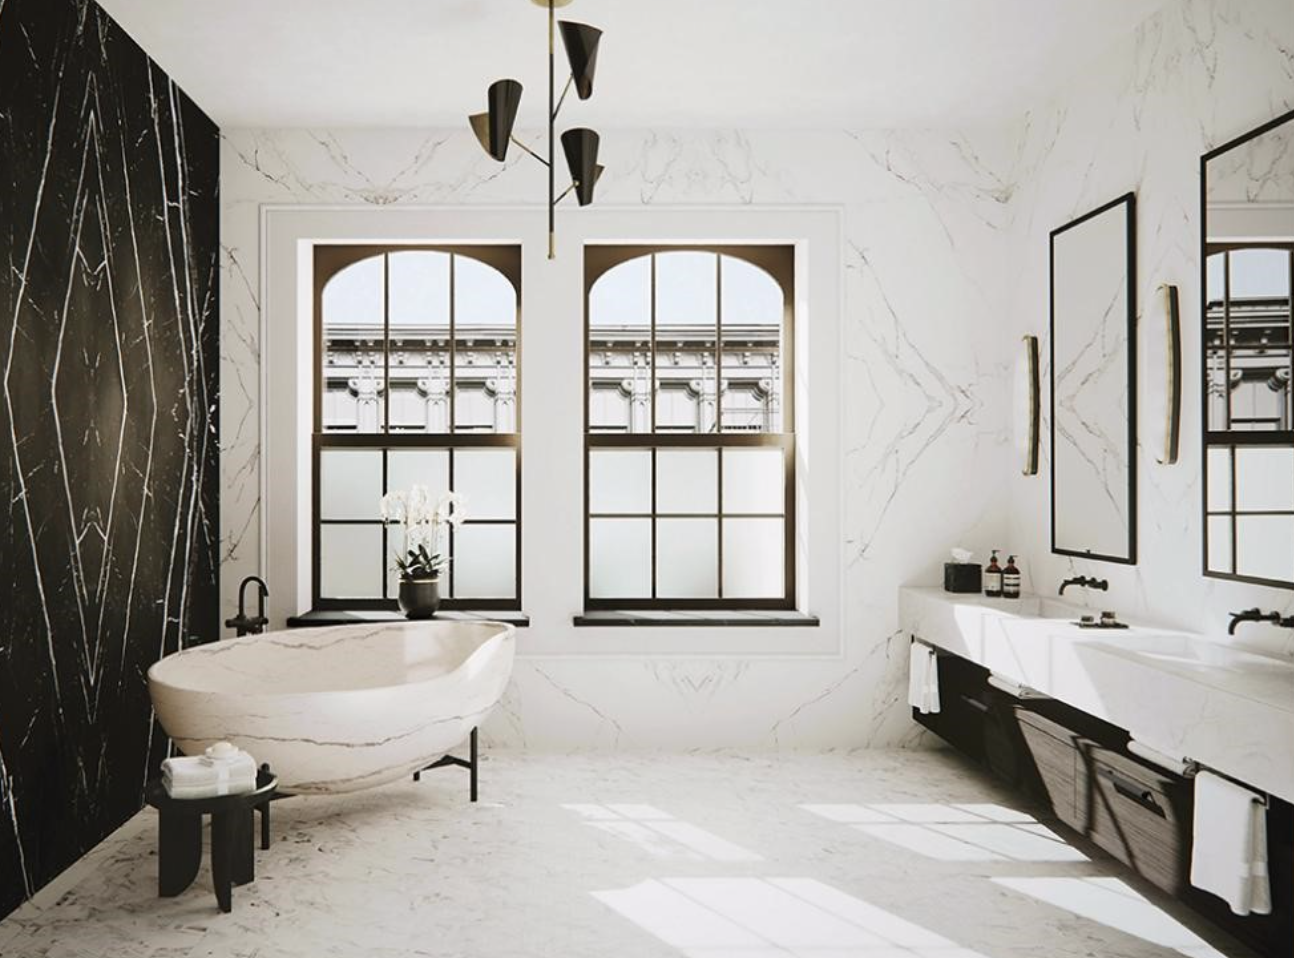 """Above: Designer  Dorothee Junkin of DJDS  recently chose Kora for a NYC loft project. """"In the master bathroom, a composition of book-matched white and black marble slabs creates a feature backdrop for a freestanding sculptural soaking tub carved from a solid block of marble,"""" she said. """"As in the primary spaces of the apartment, layered light finishes stand in deliberate juxtaposition to select dark feature elements that aide to imbue each space with the individuality it deserves"""""""